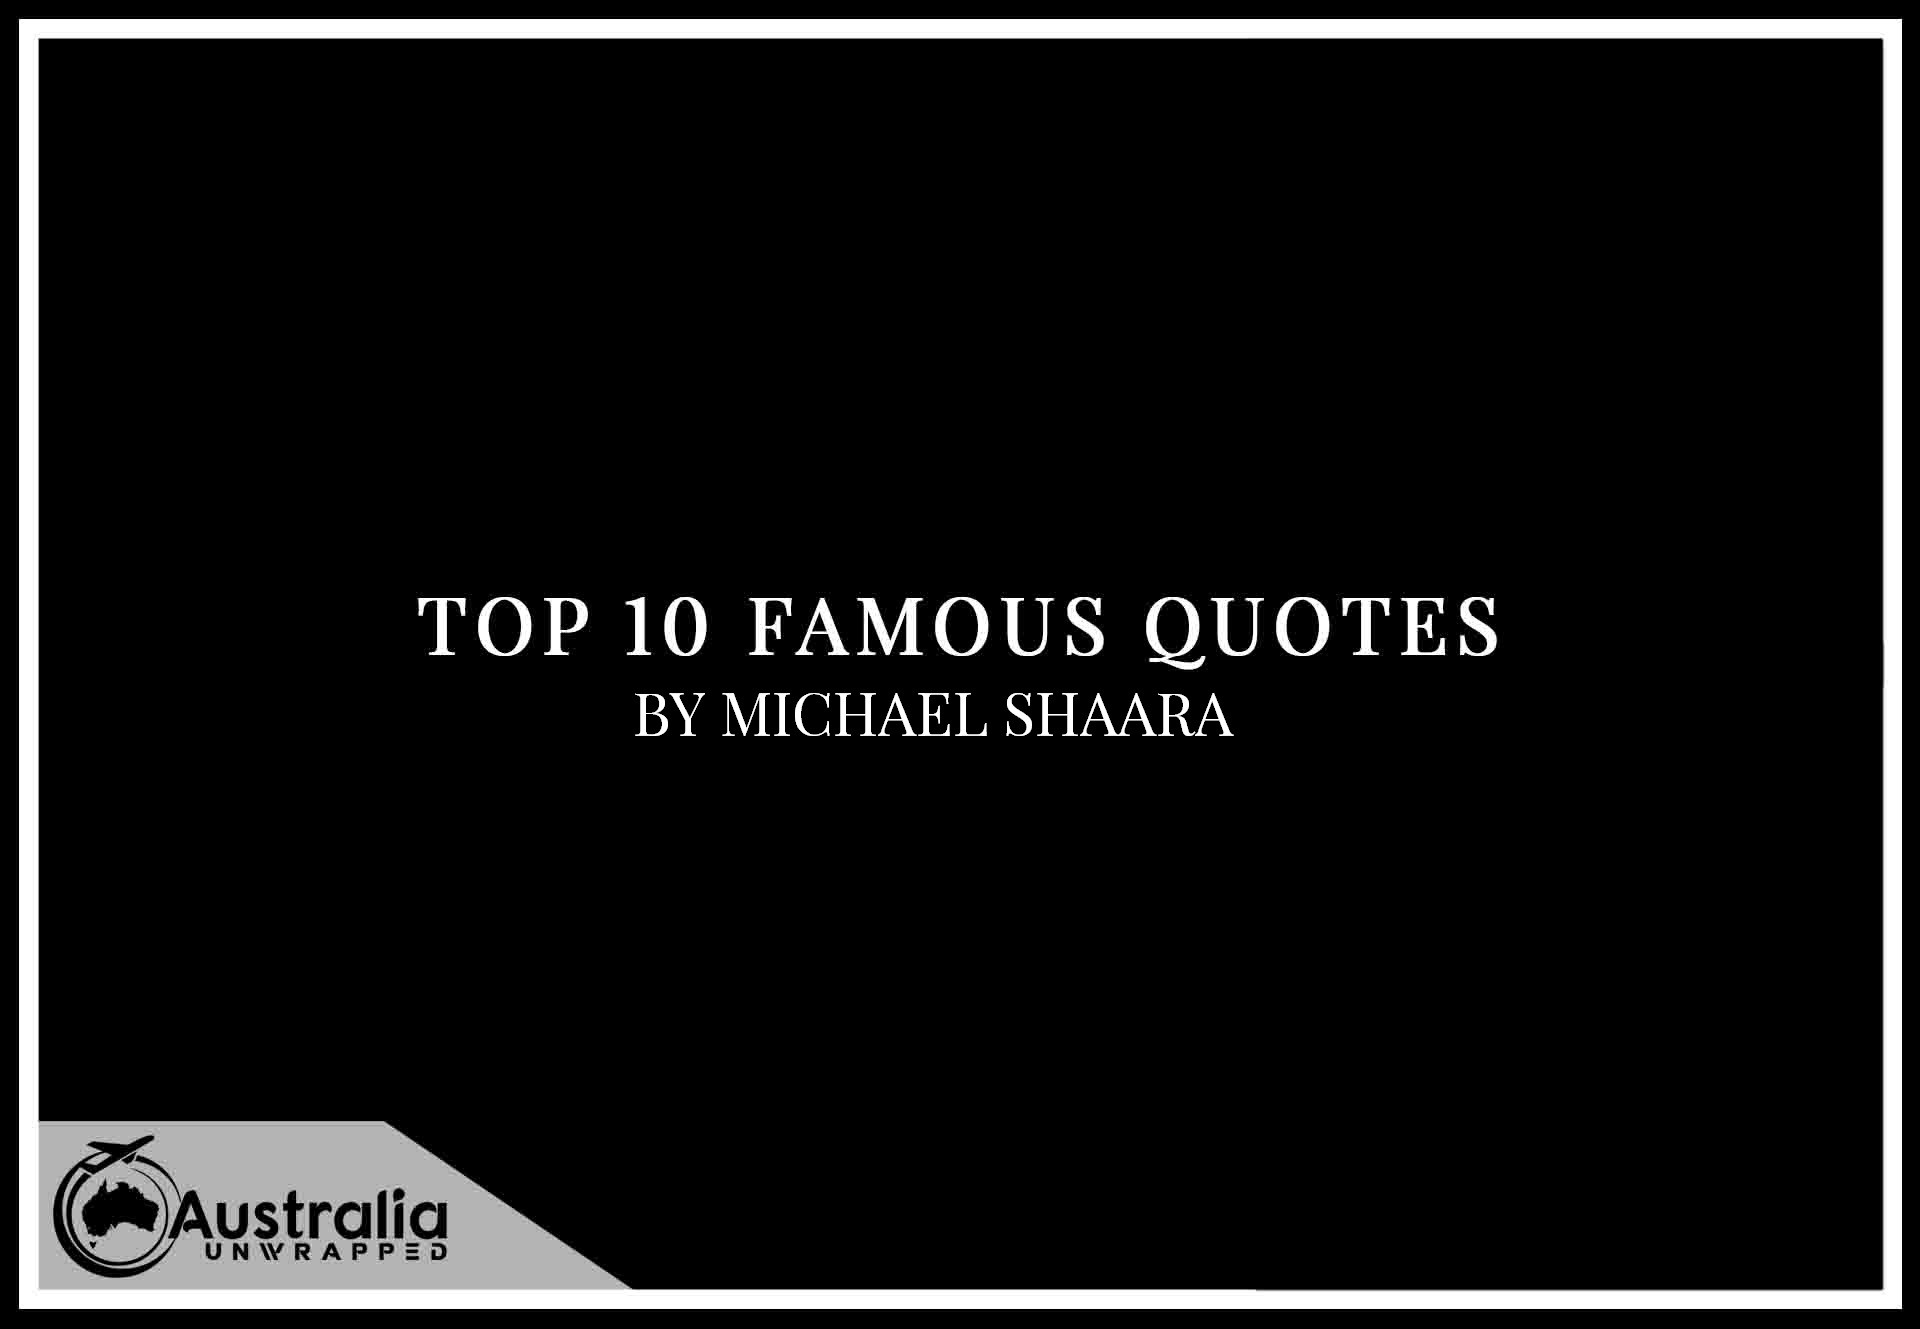 Top 10 Famous Quotes by Author Michael Shaara